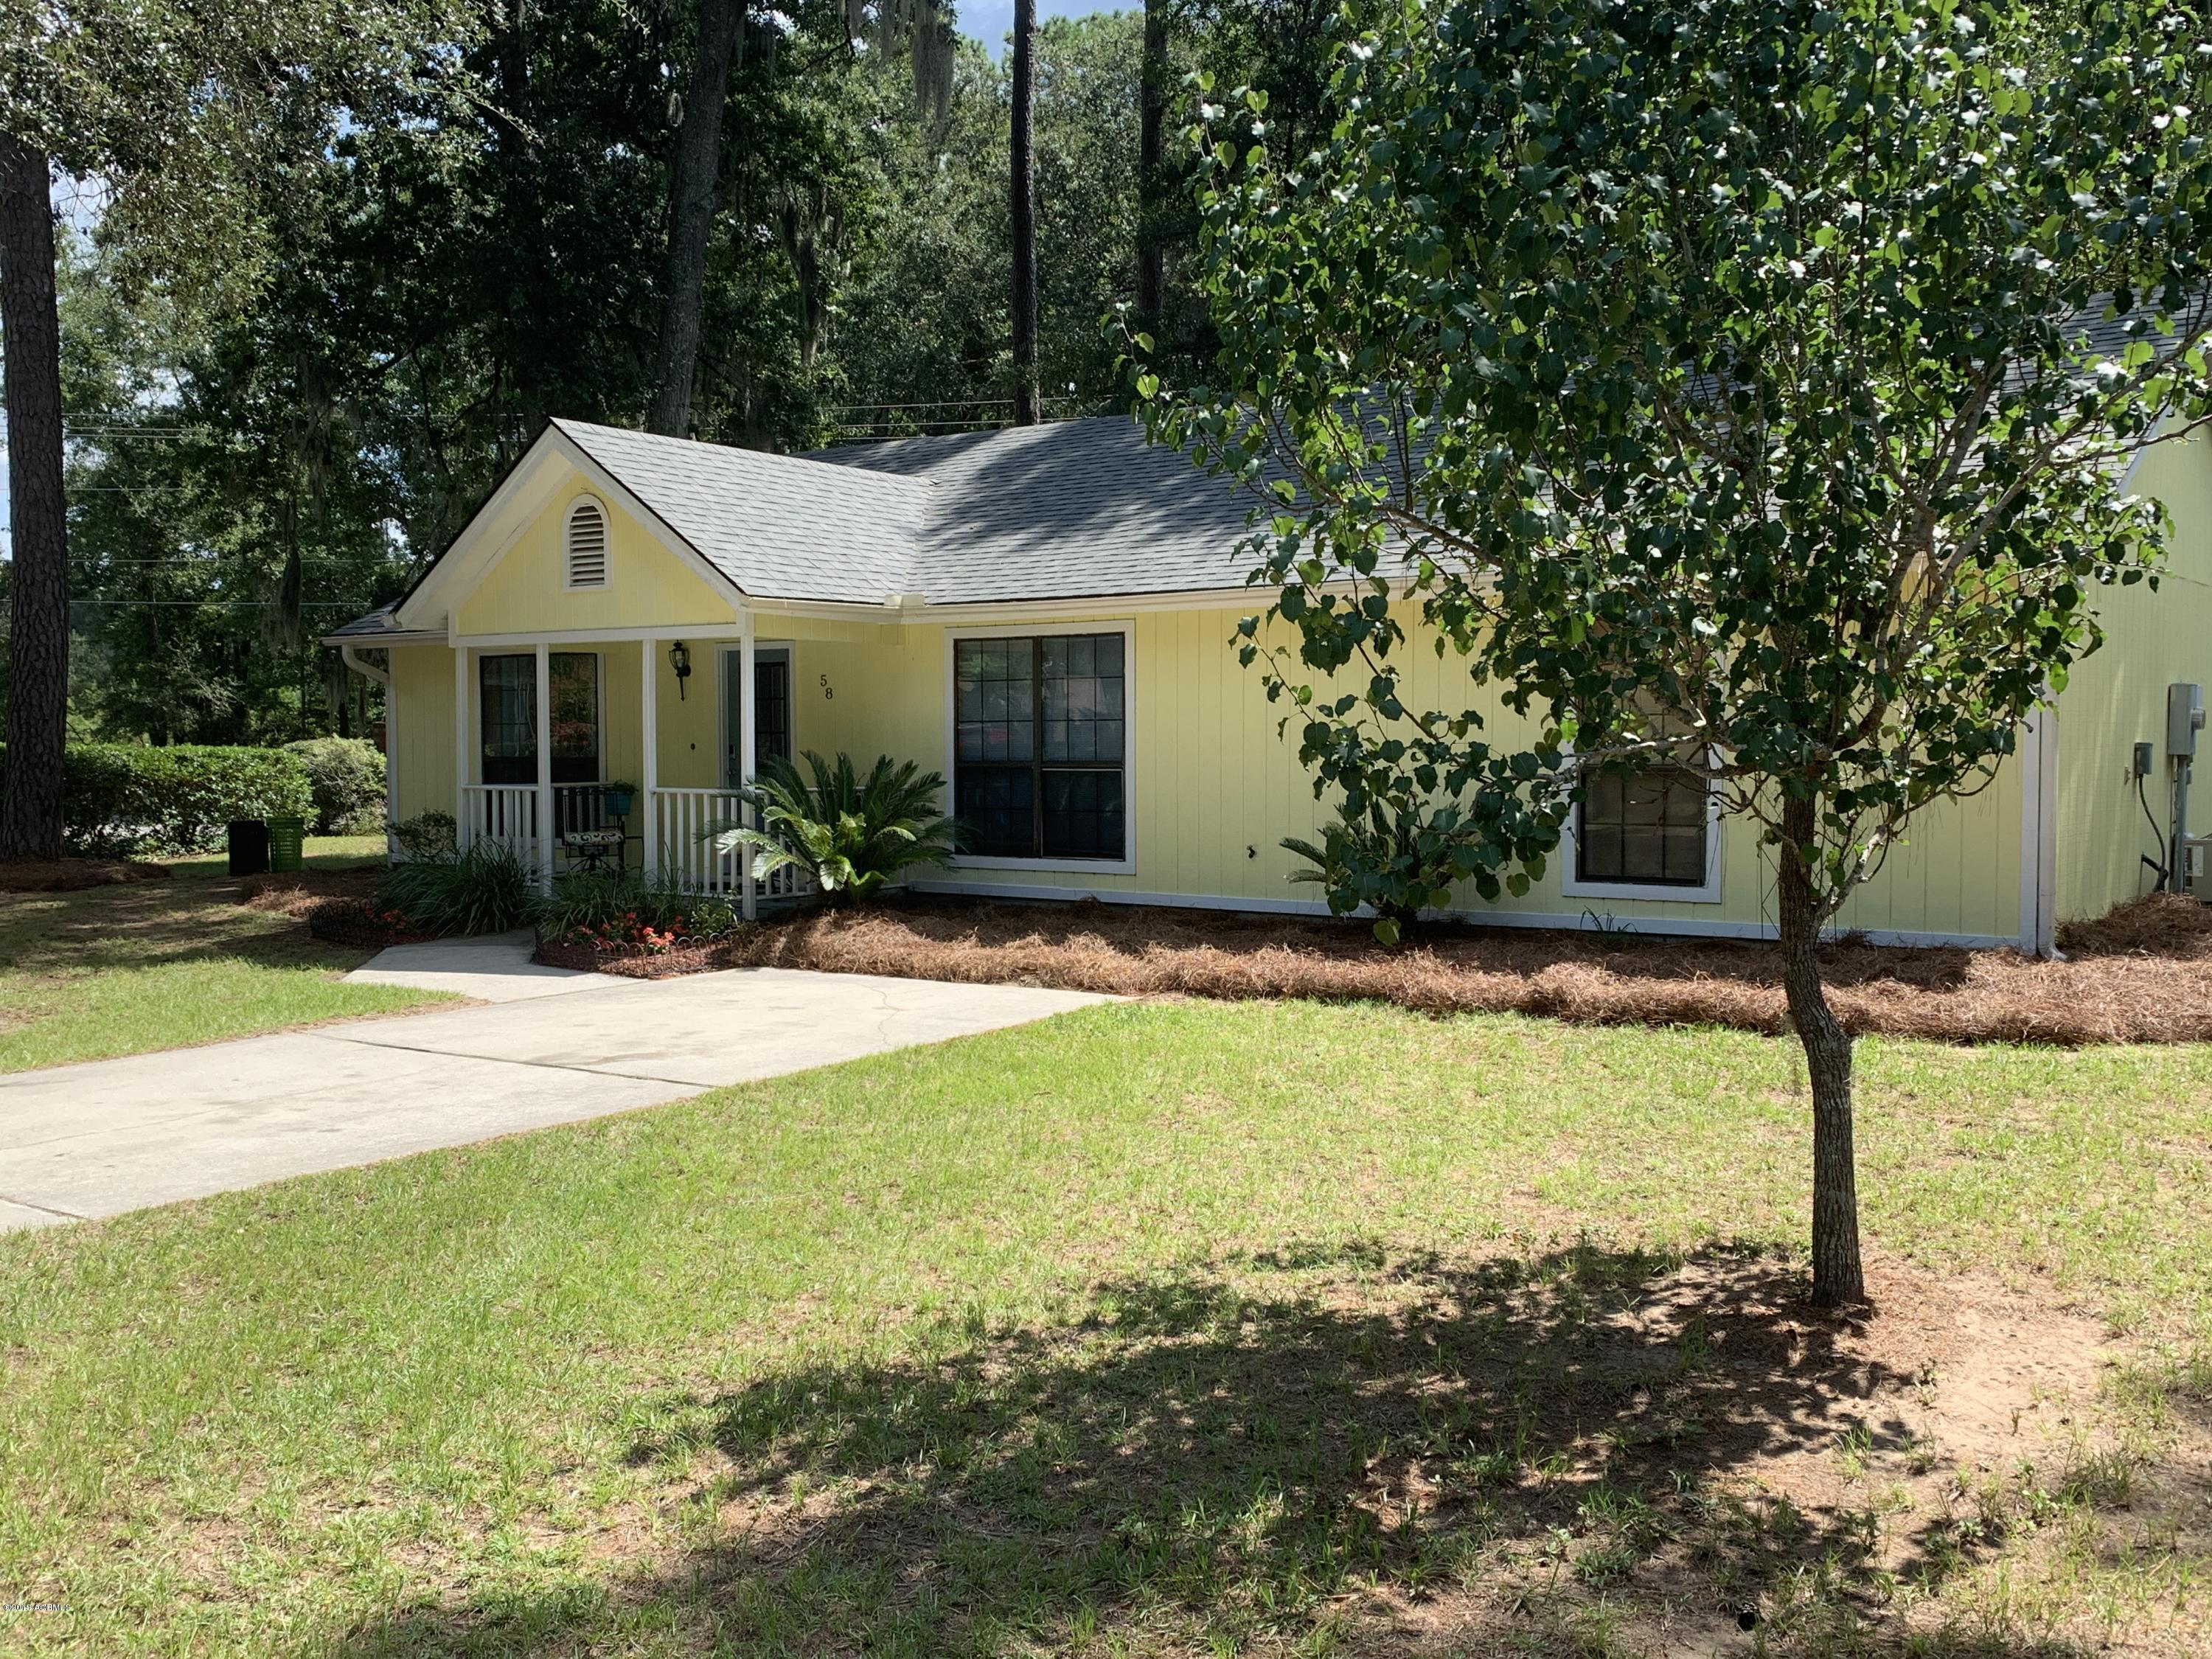 Photo of 58 Partridge Circle, Beaufort, SC 29907